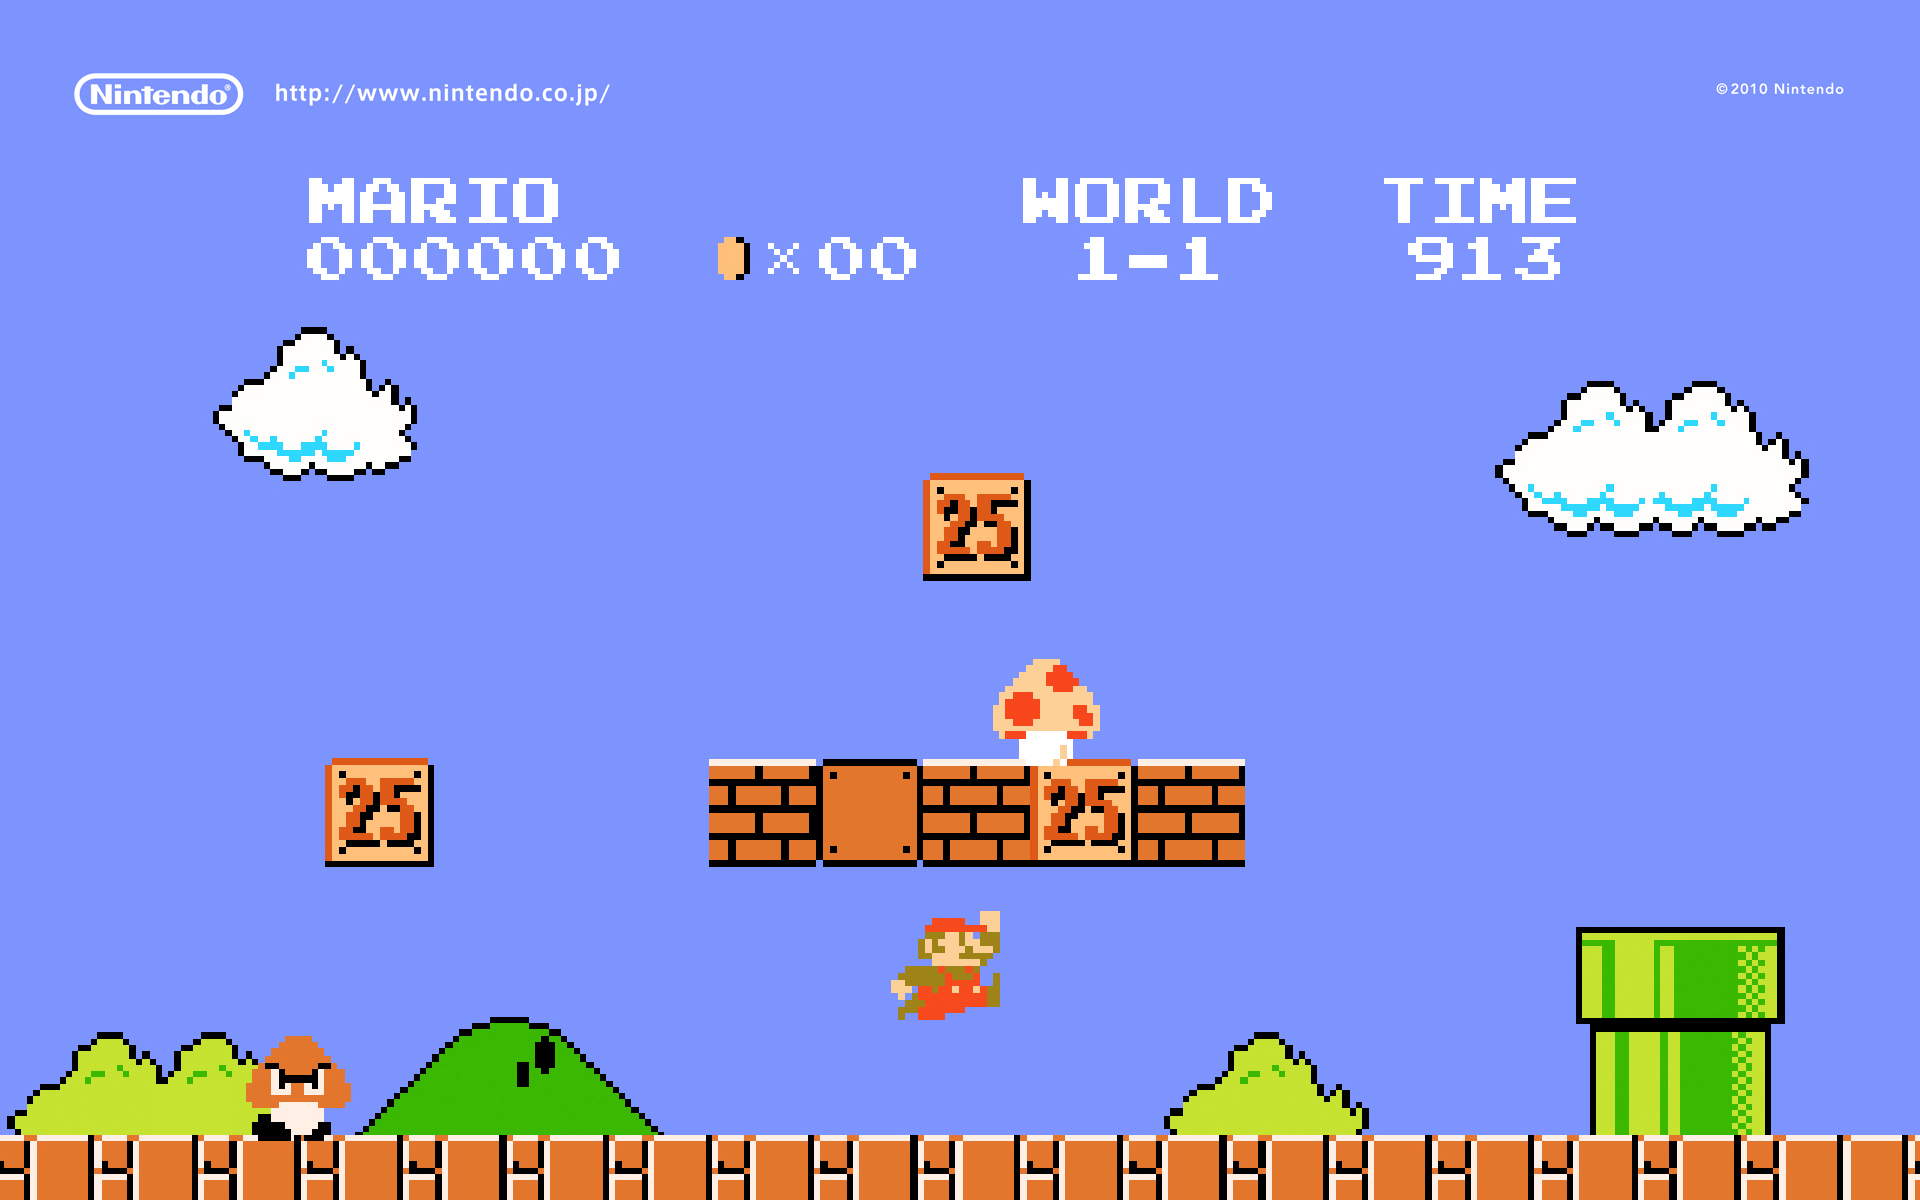 super-mario-bros-this-use-for-facebook-cover-edit-460228